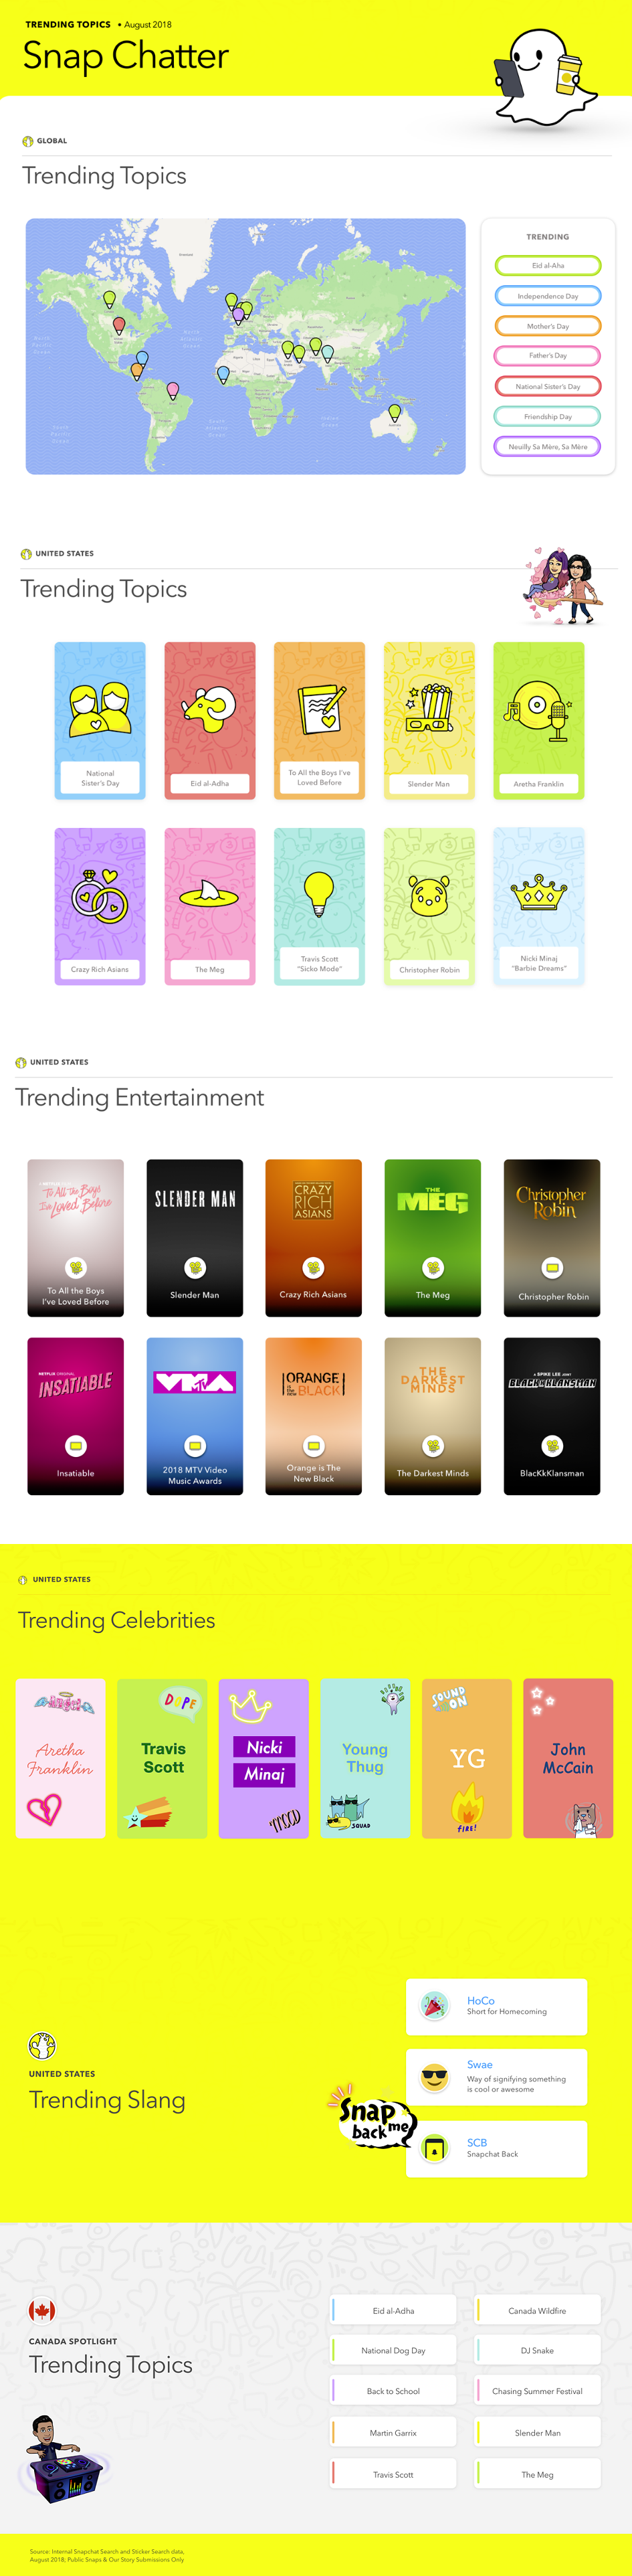 Snapchat's latest Snap Chatter trending topics report